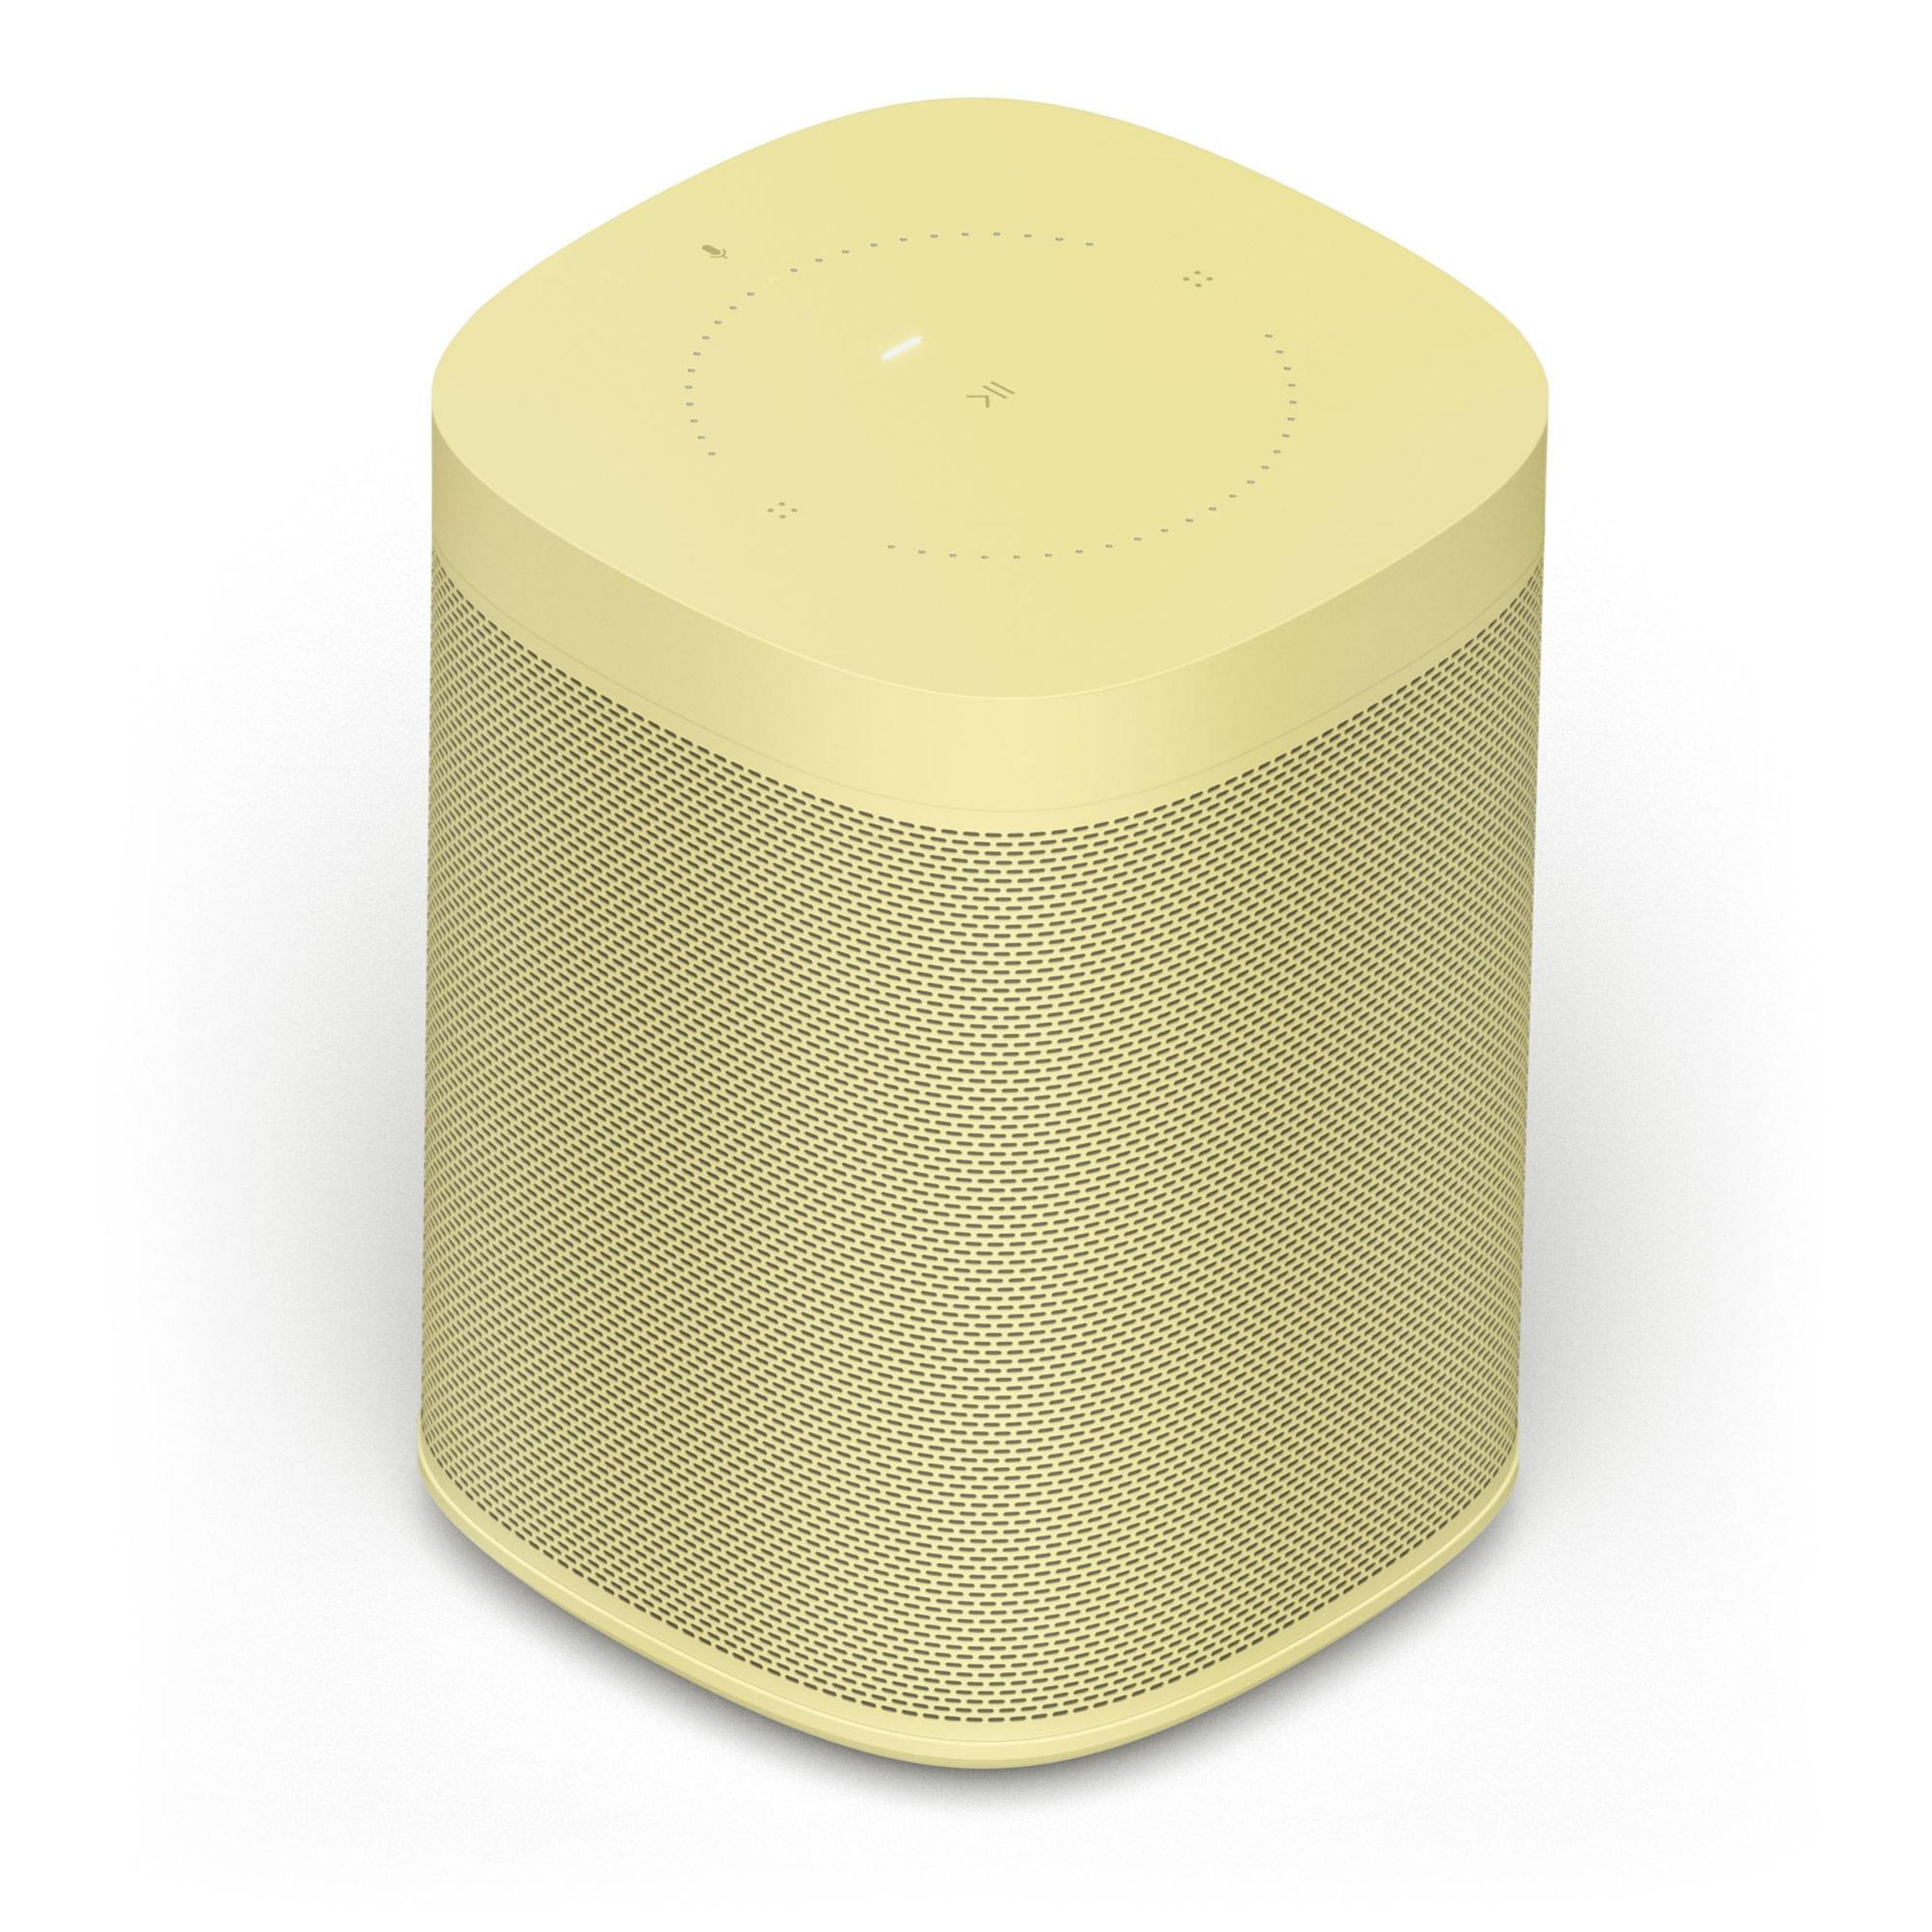 HAY Sonos One limited edition yellow